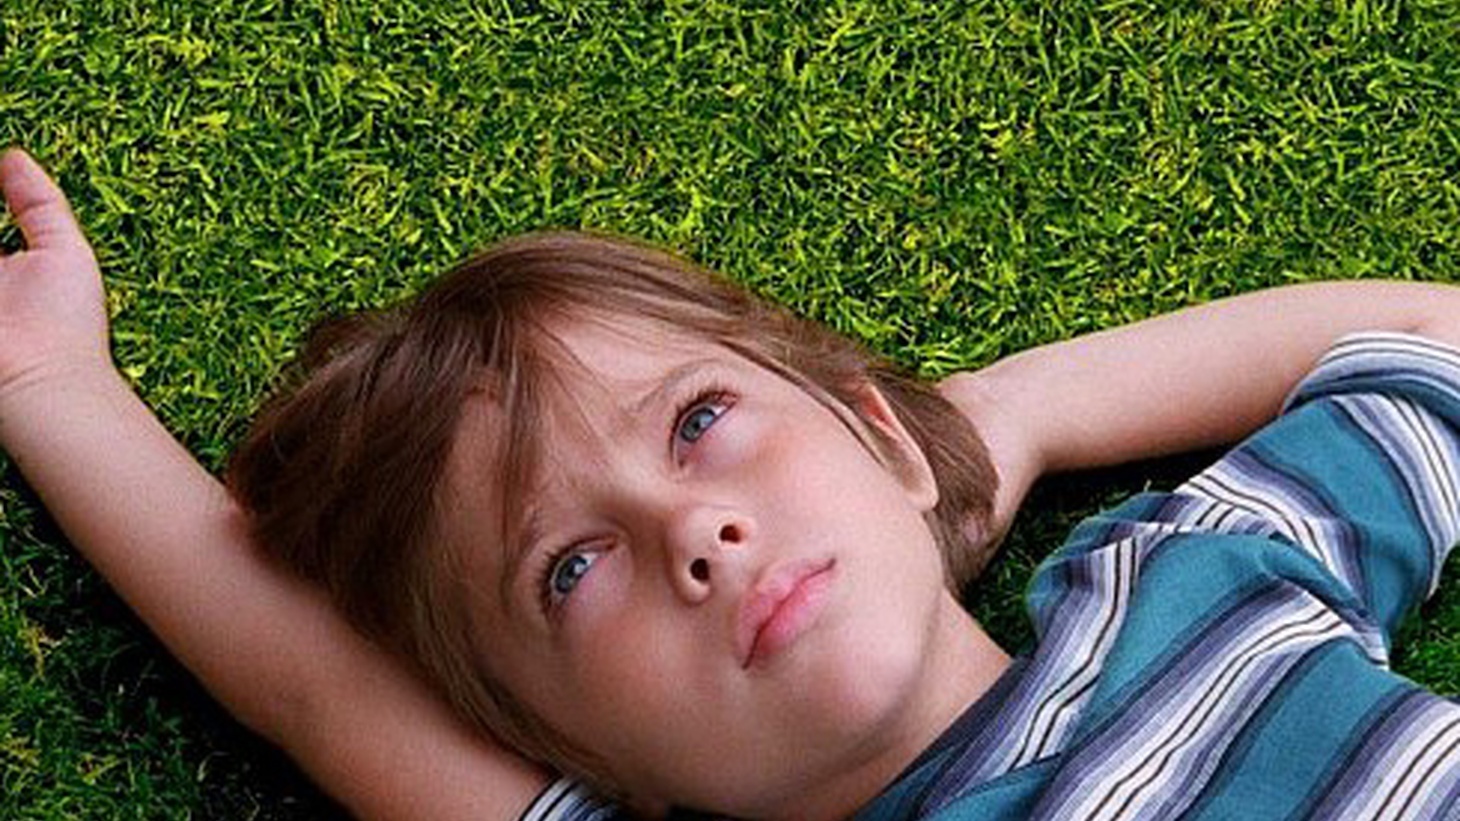 On rare occasions a movie seems to channel the flow of real life. Richard Linklater's Boyhood is one of those occasions.